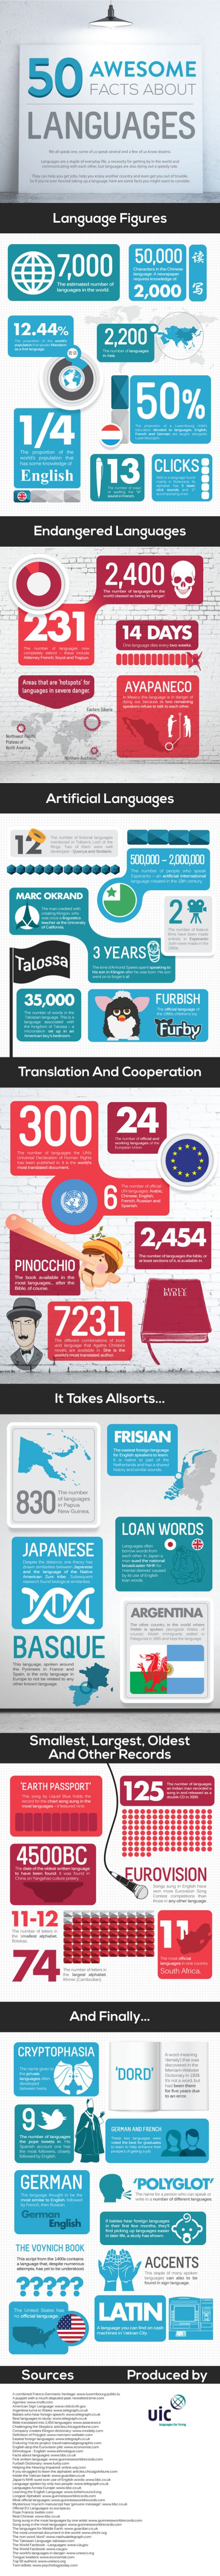 50 interesting facts about languages (Infographic)  This is fascinating! How many of these did you know?